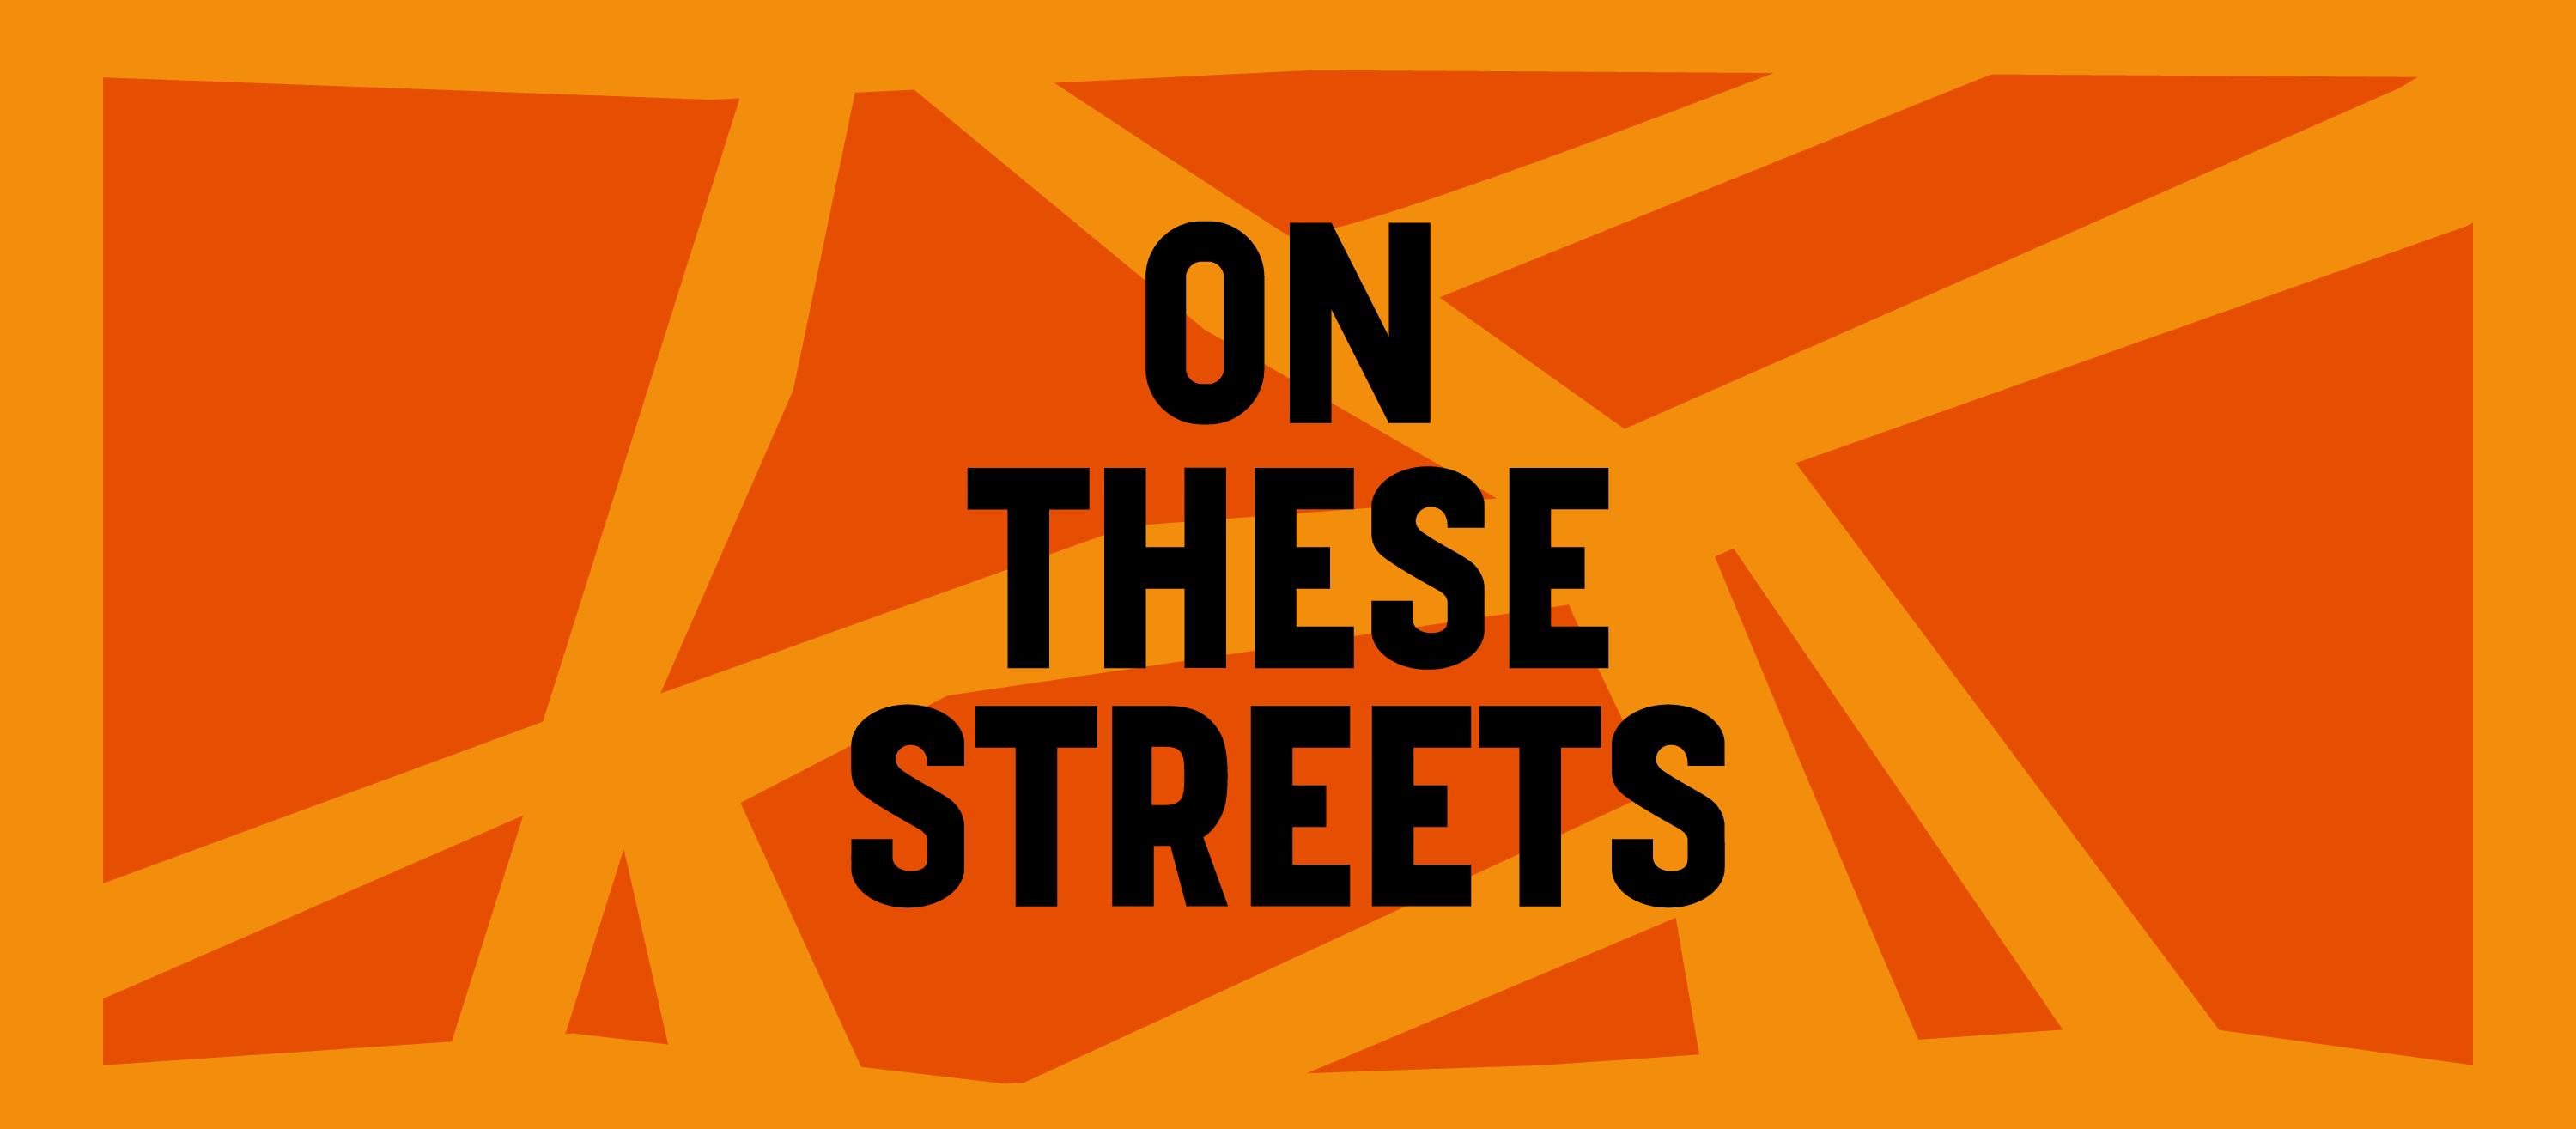 """A two tone orange graphic rendering of a simple map of Brixton. """"ON THESE STREETS"""" is overlaid in bold black caps Windrush font"""